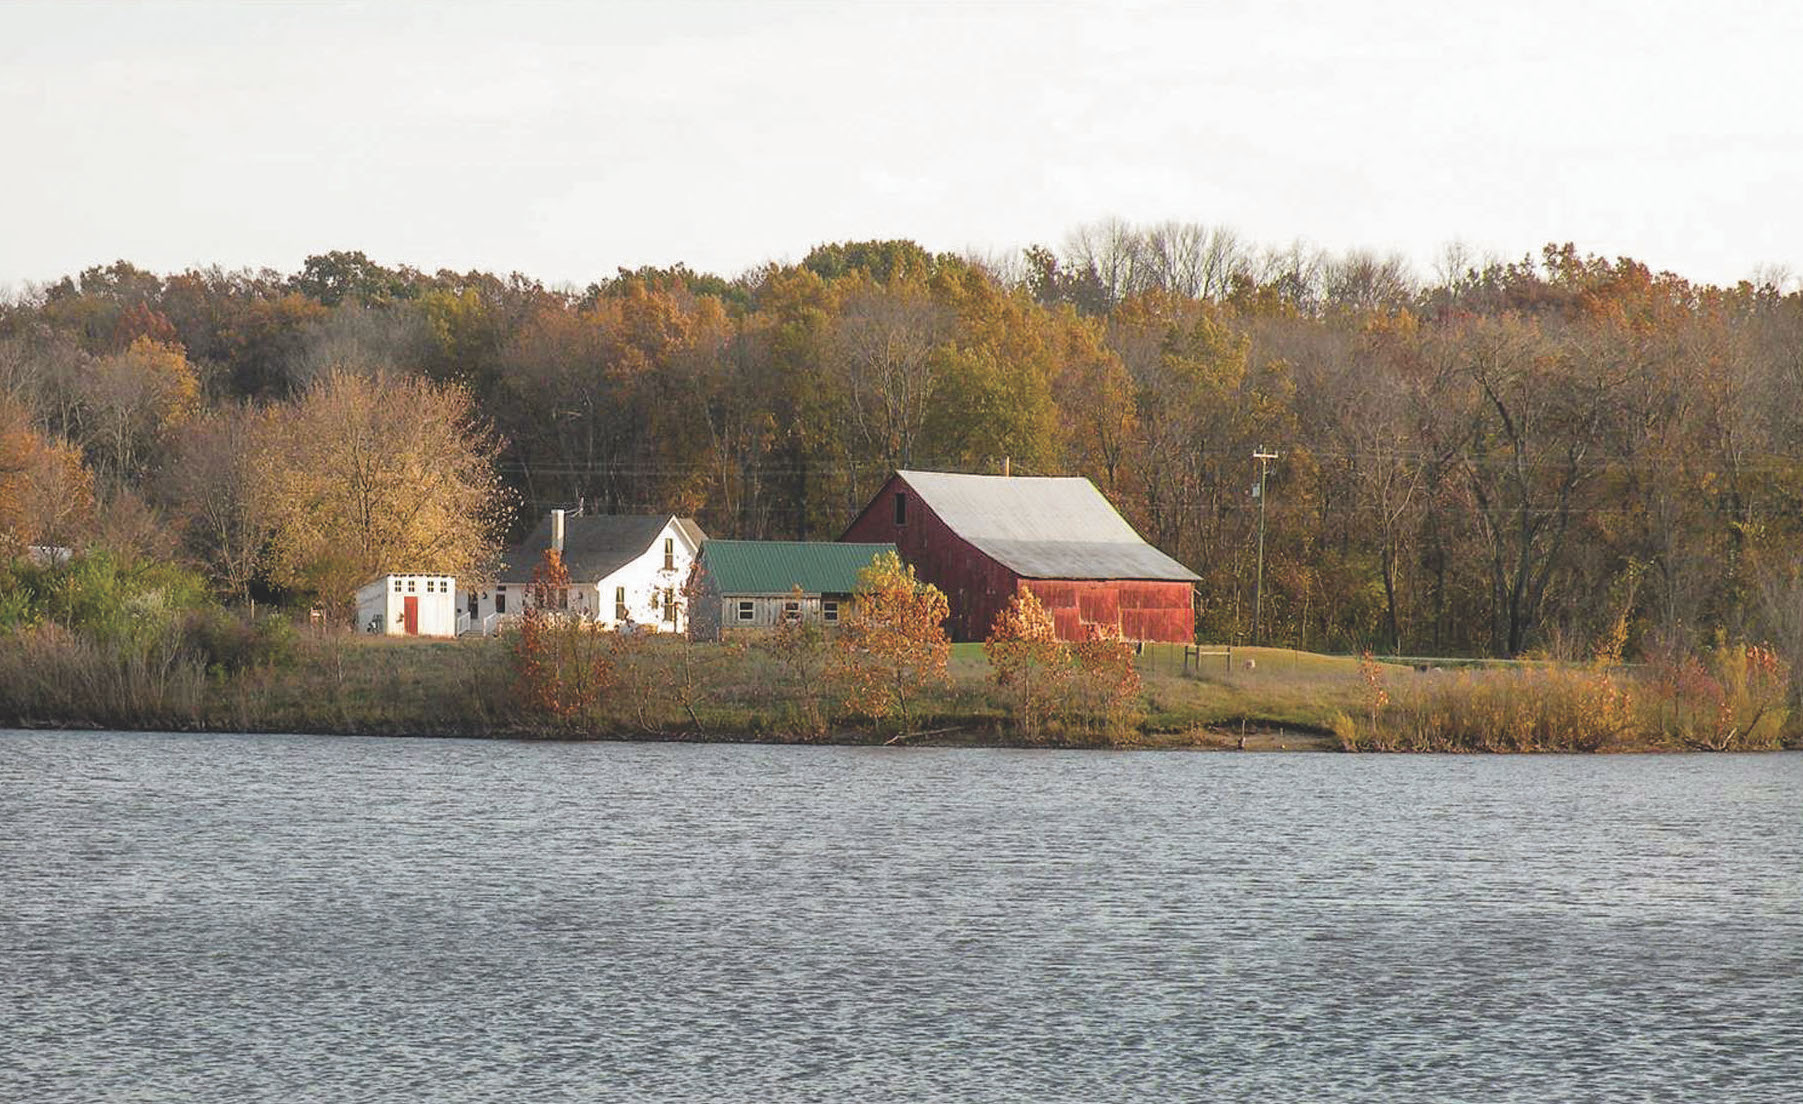 From a pond on adjacent property managed as a public park, the view toward the farmstead is bucolic.